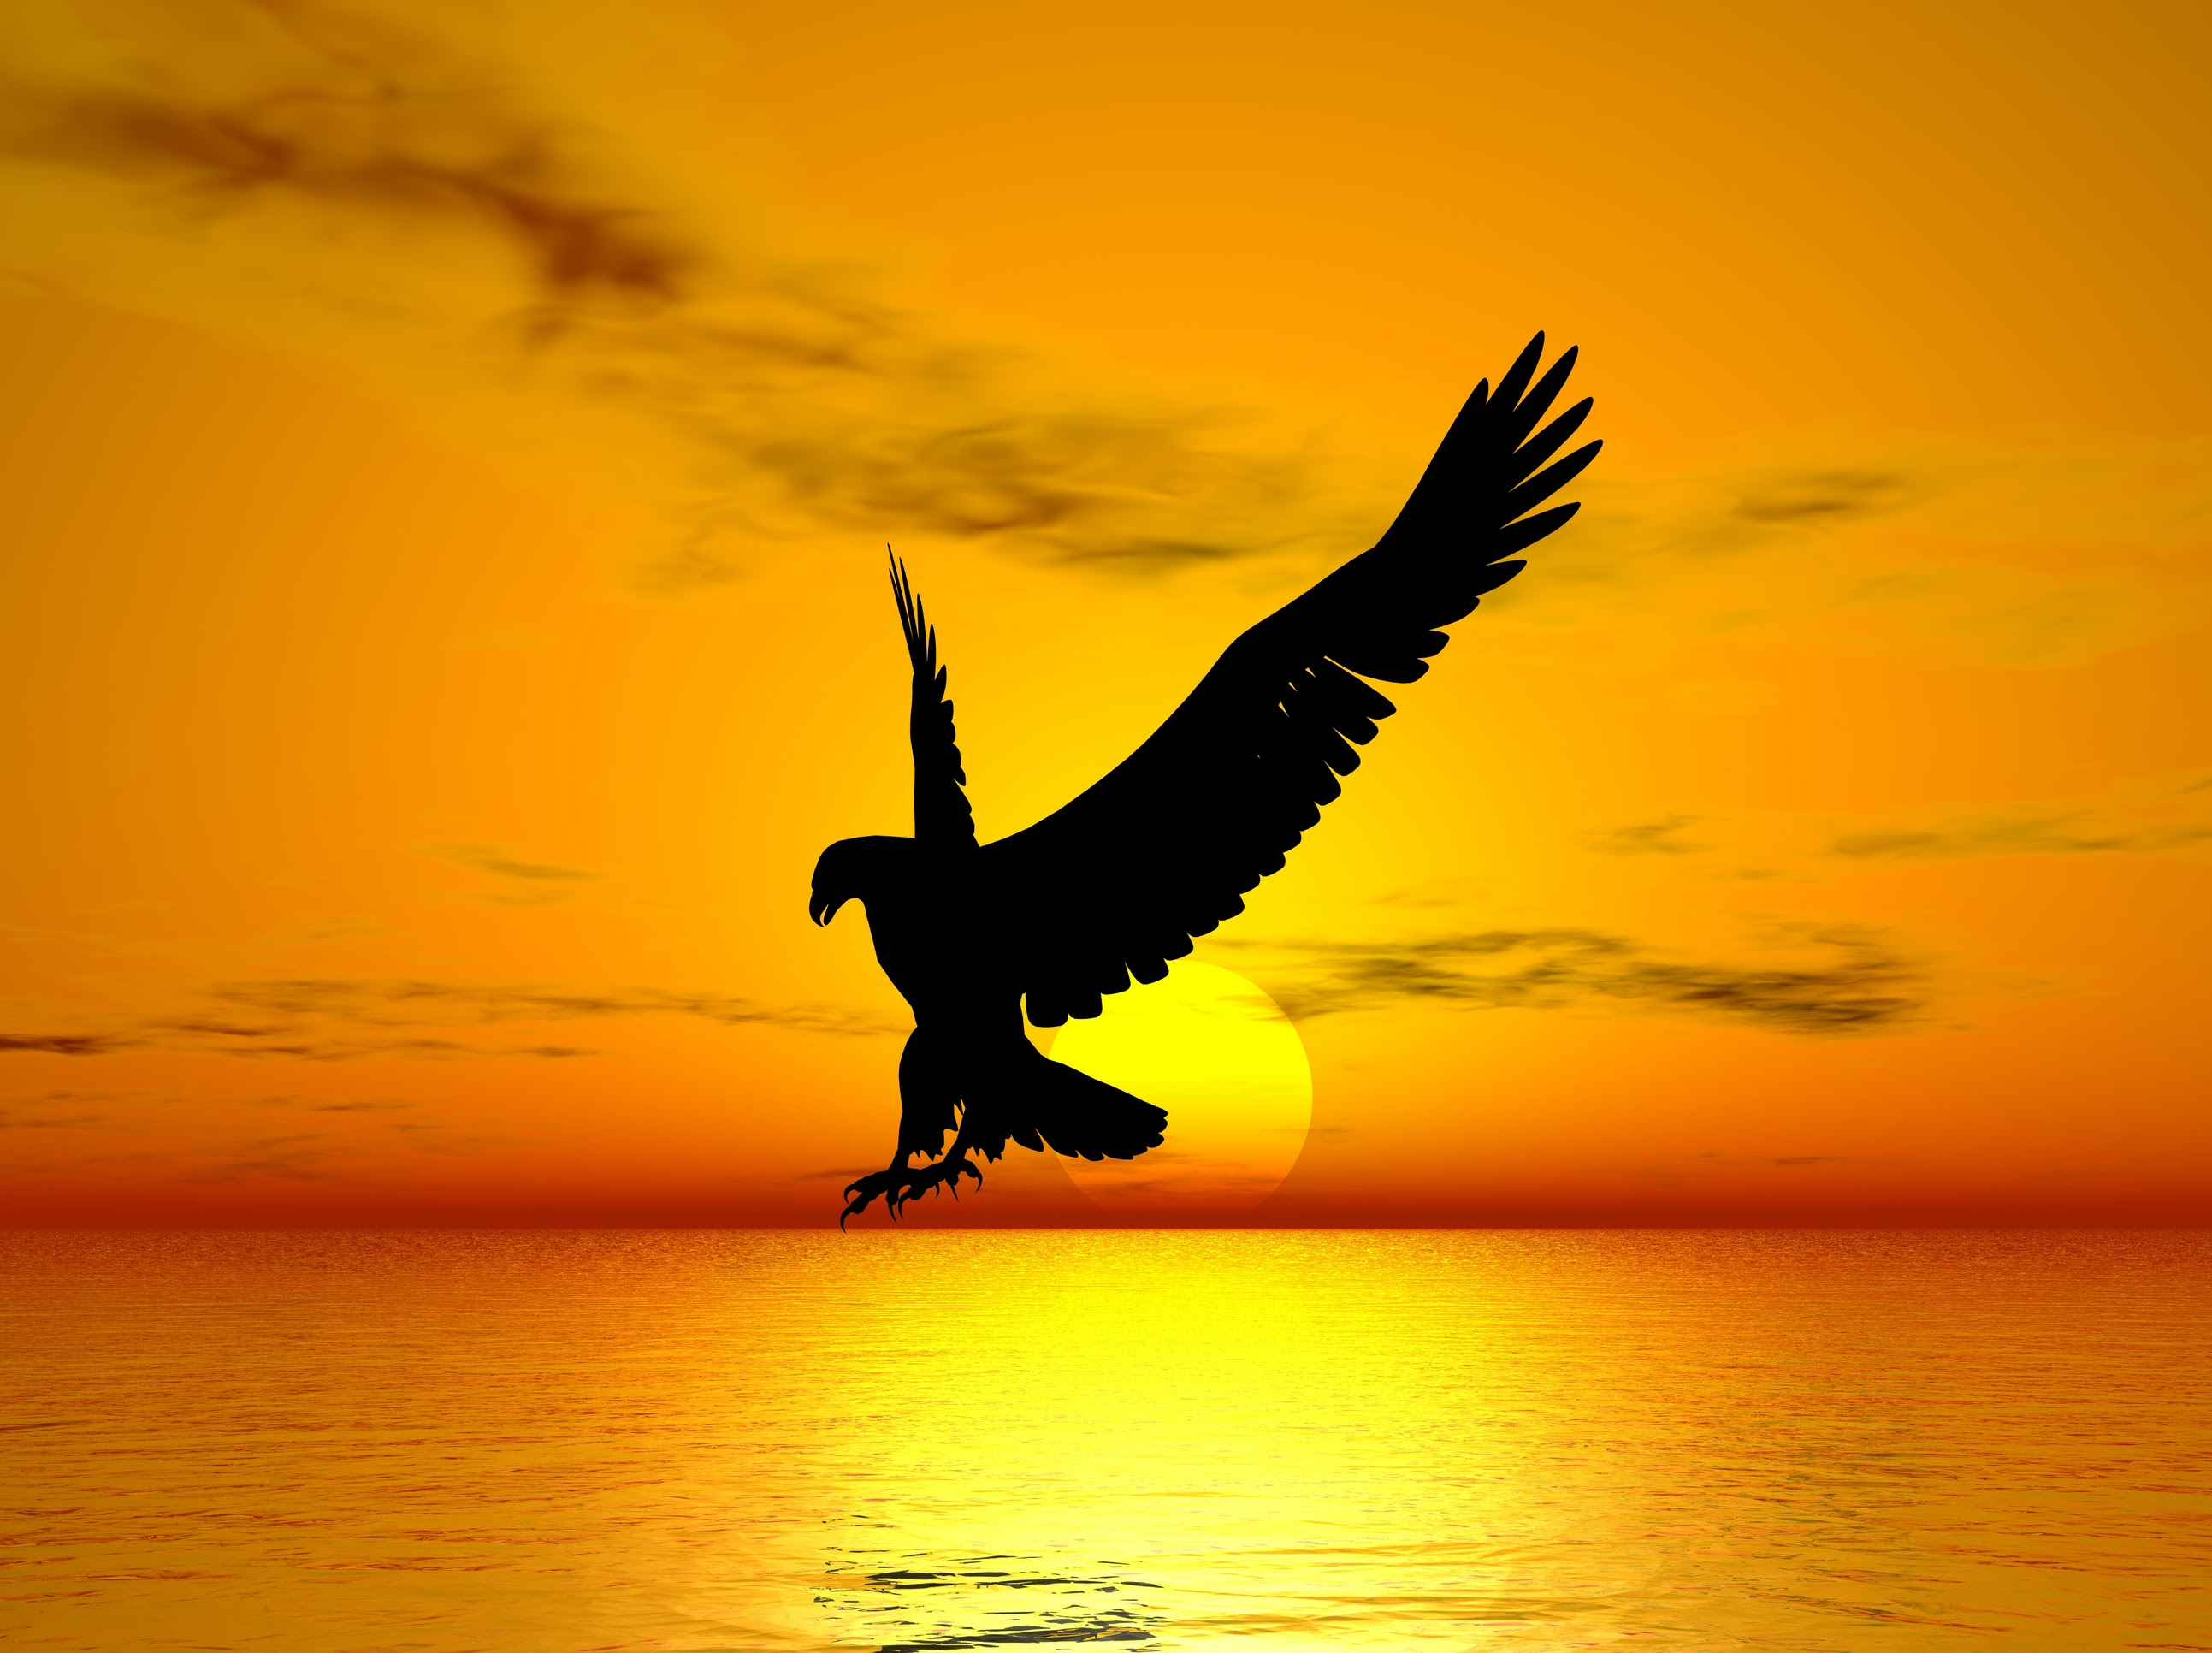 eagle soaring through the sunset